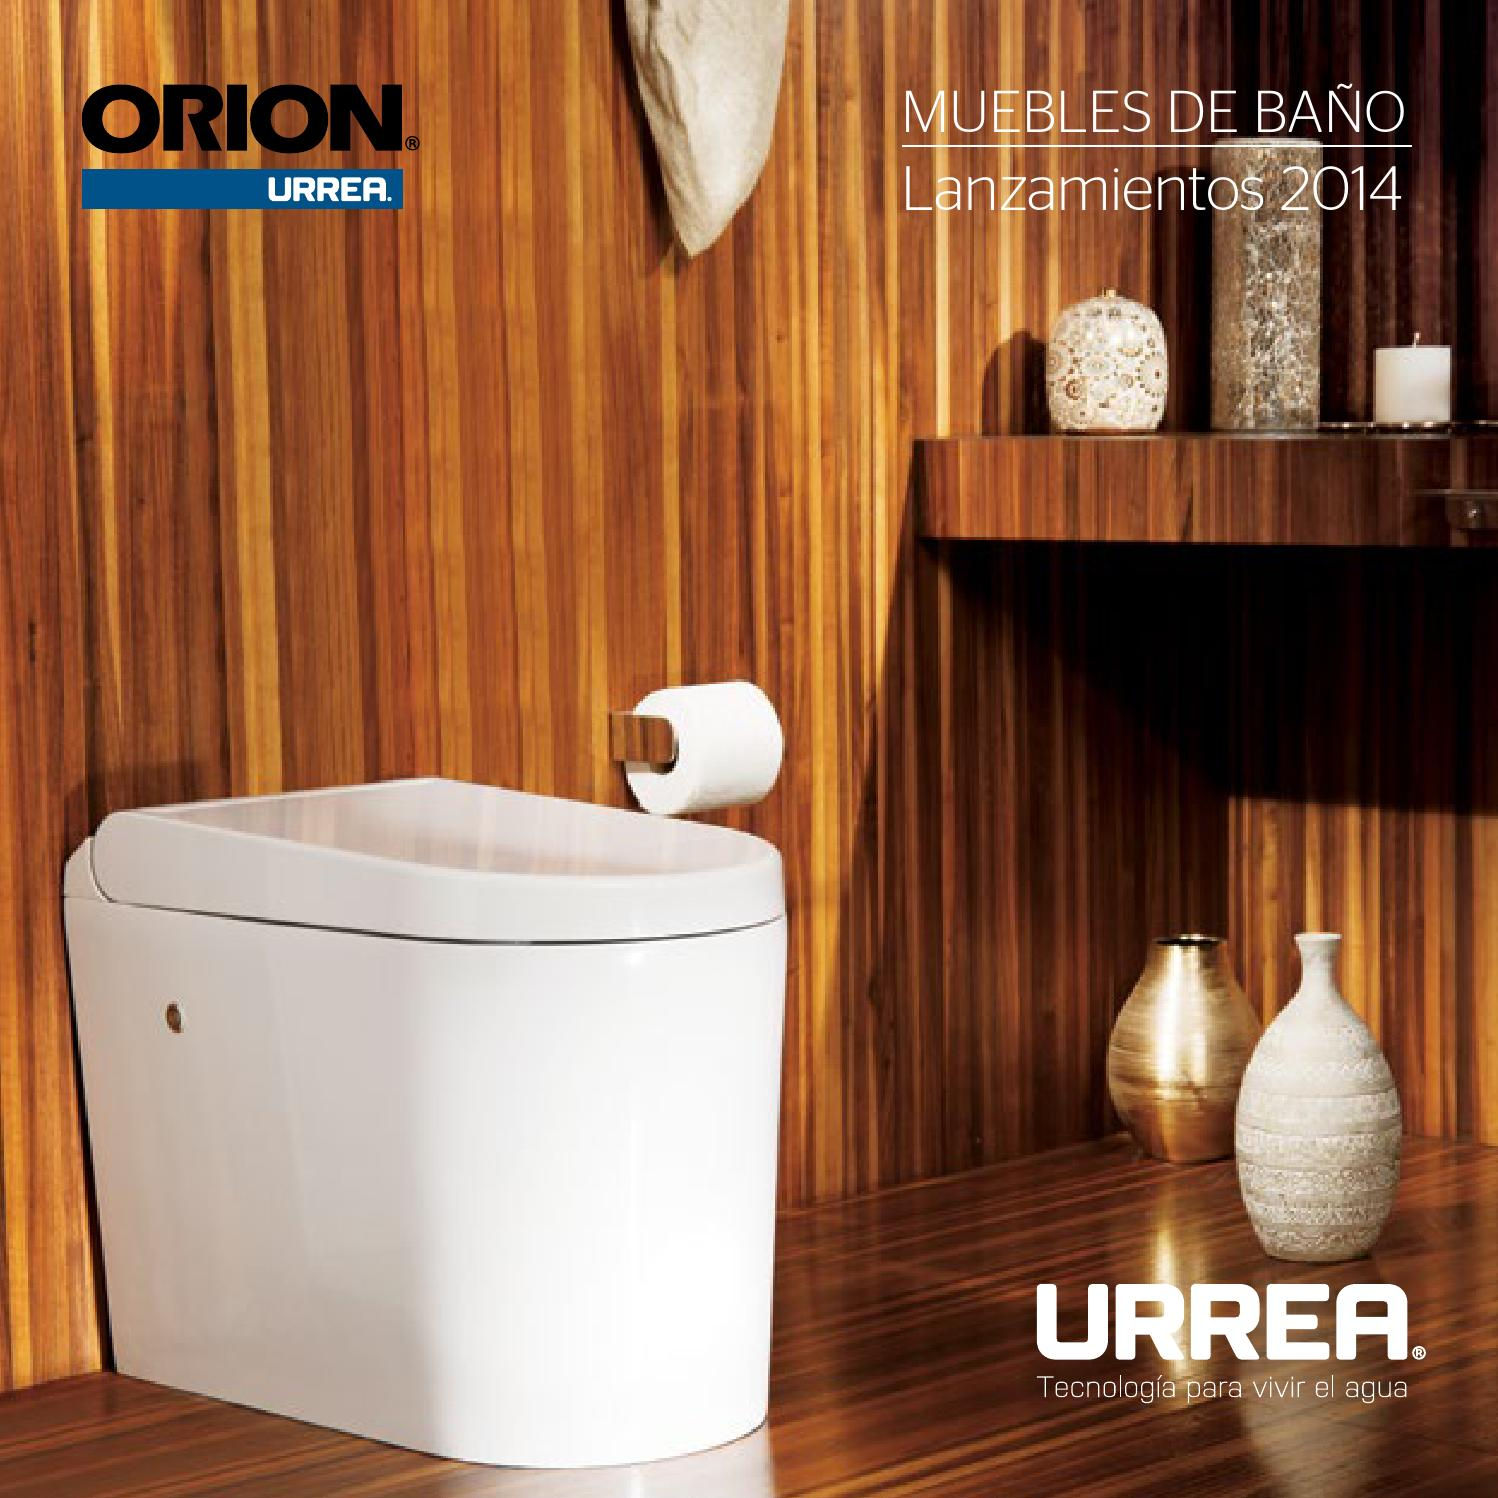 Muebles de ba o by urrea m xico issuu for Muebles de bano urrea